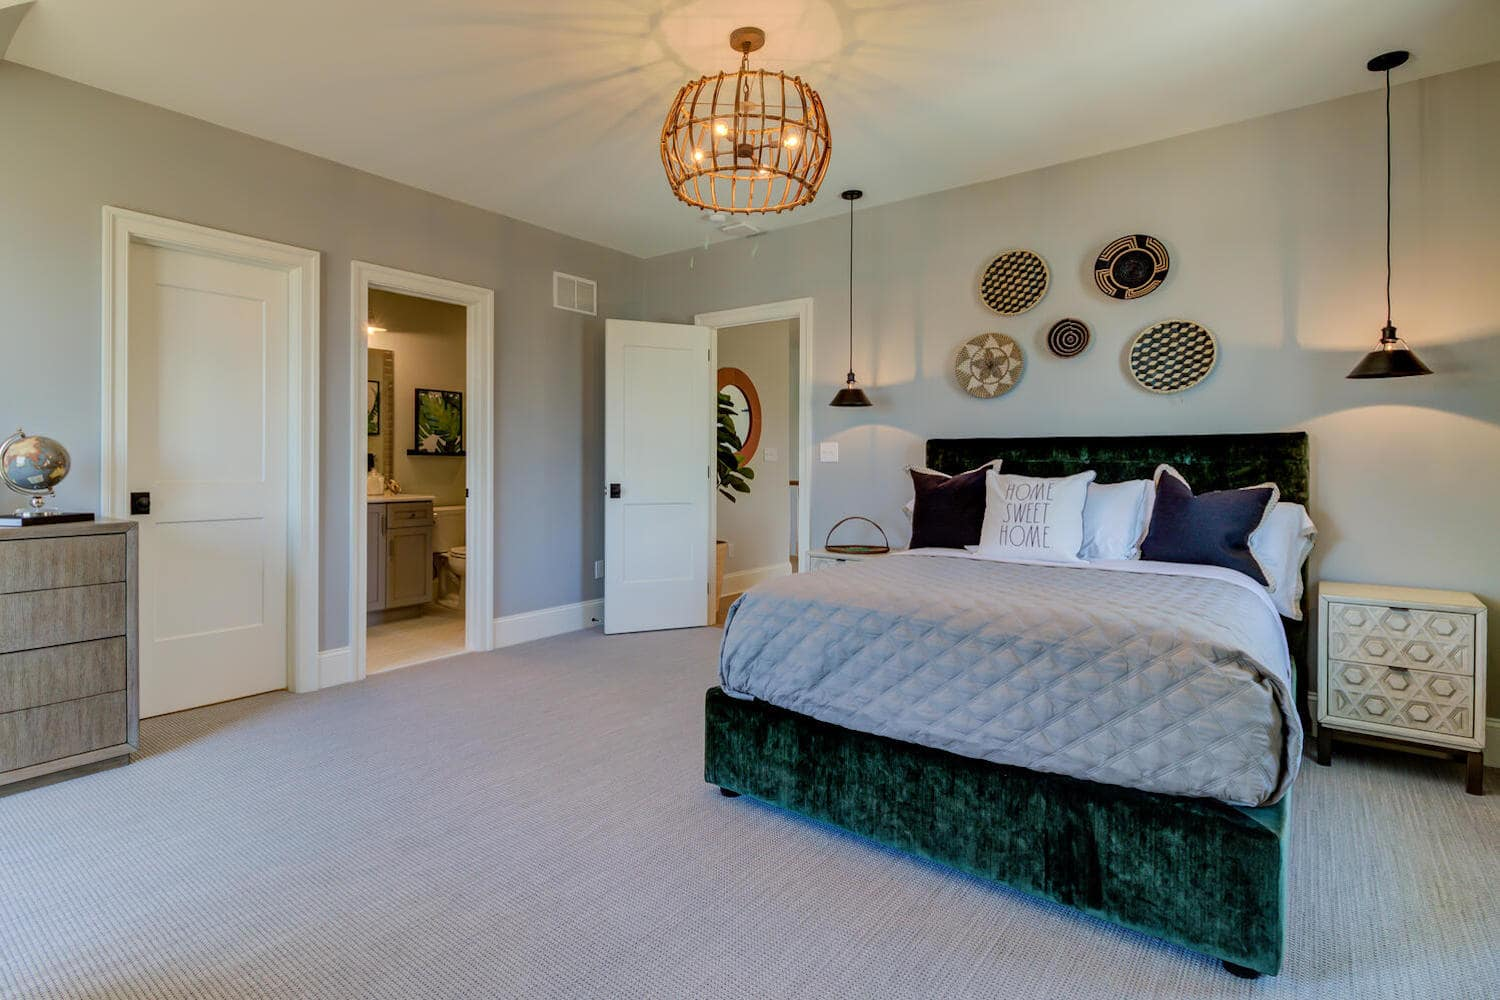 Master bedroom in a new home from Bentley Homes.